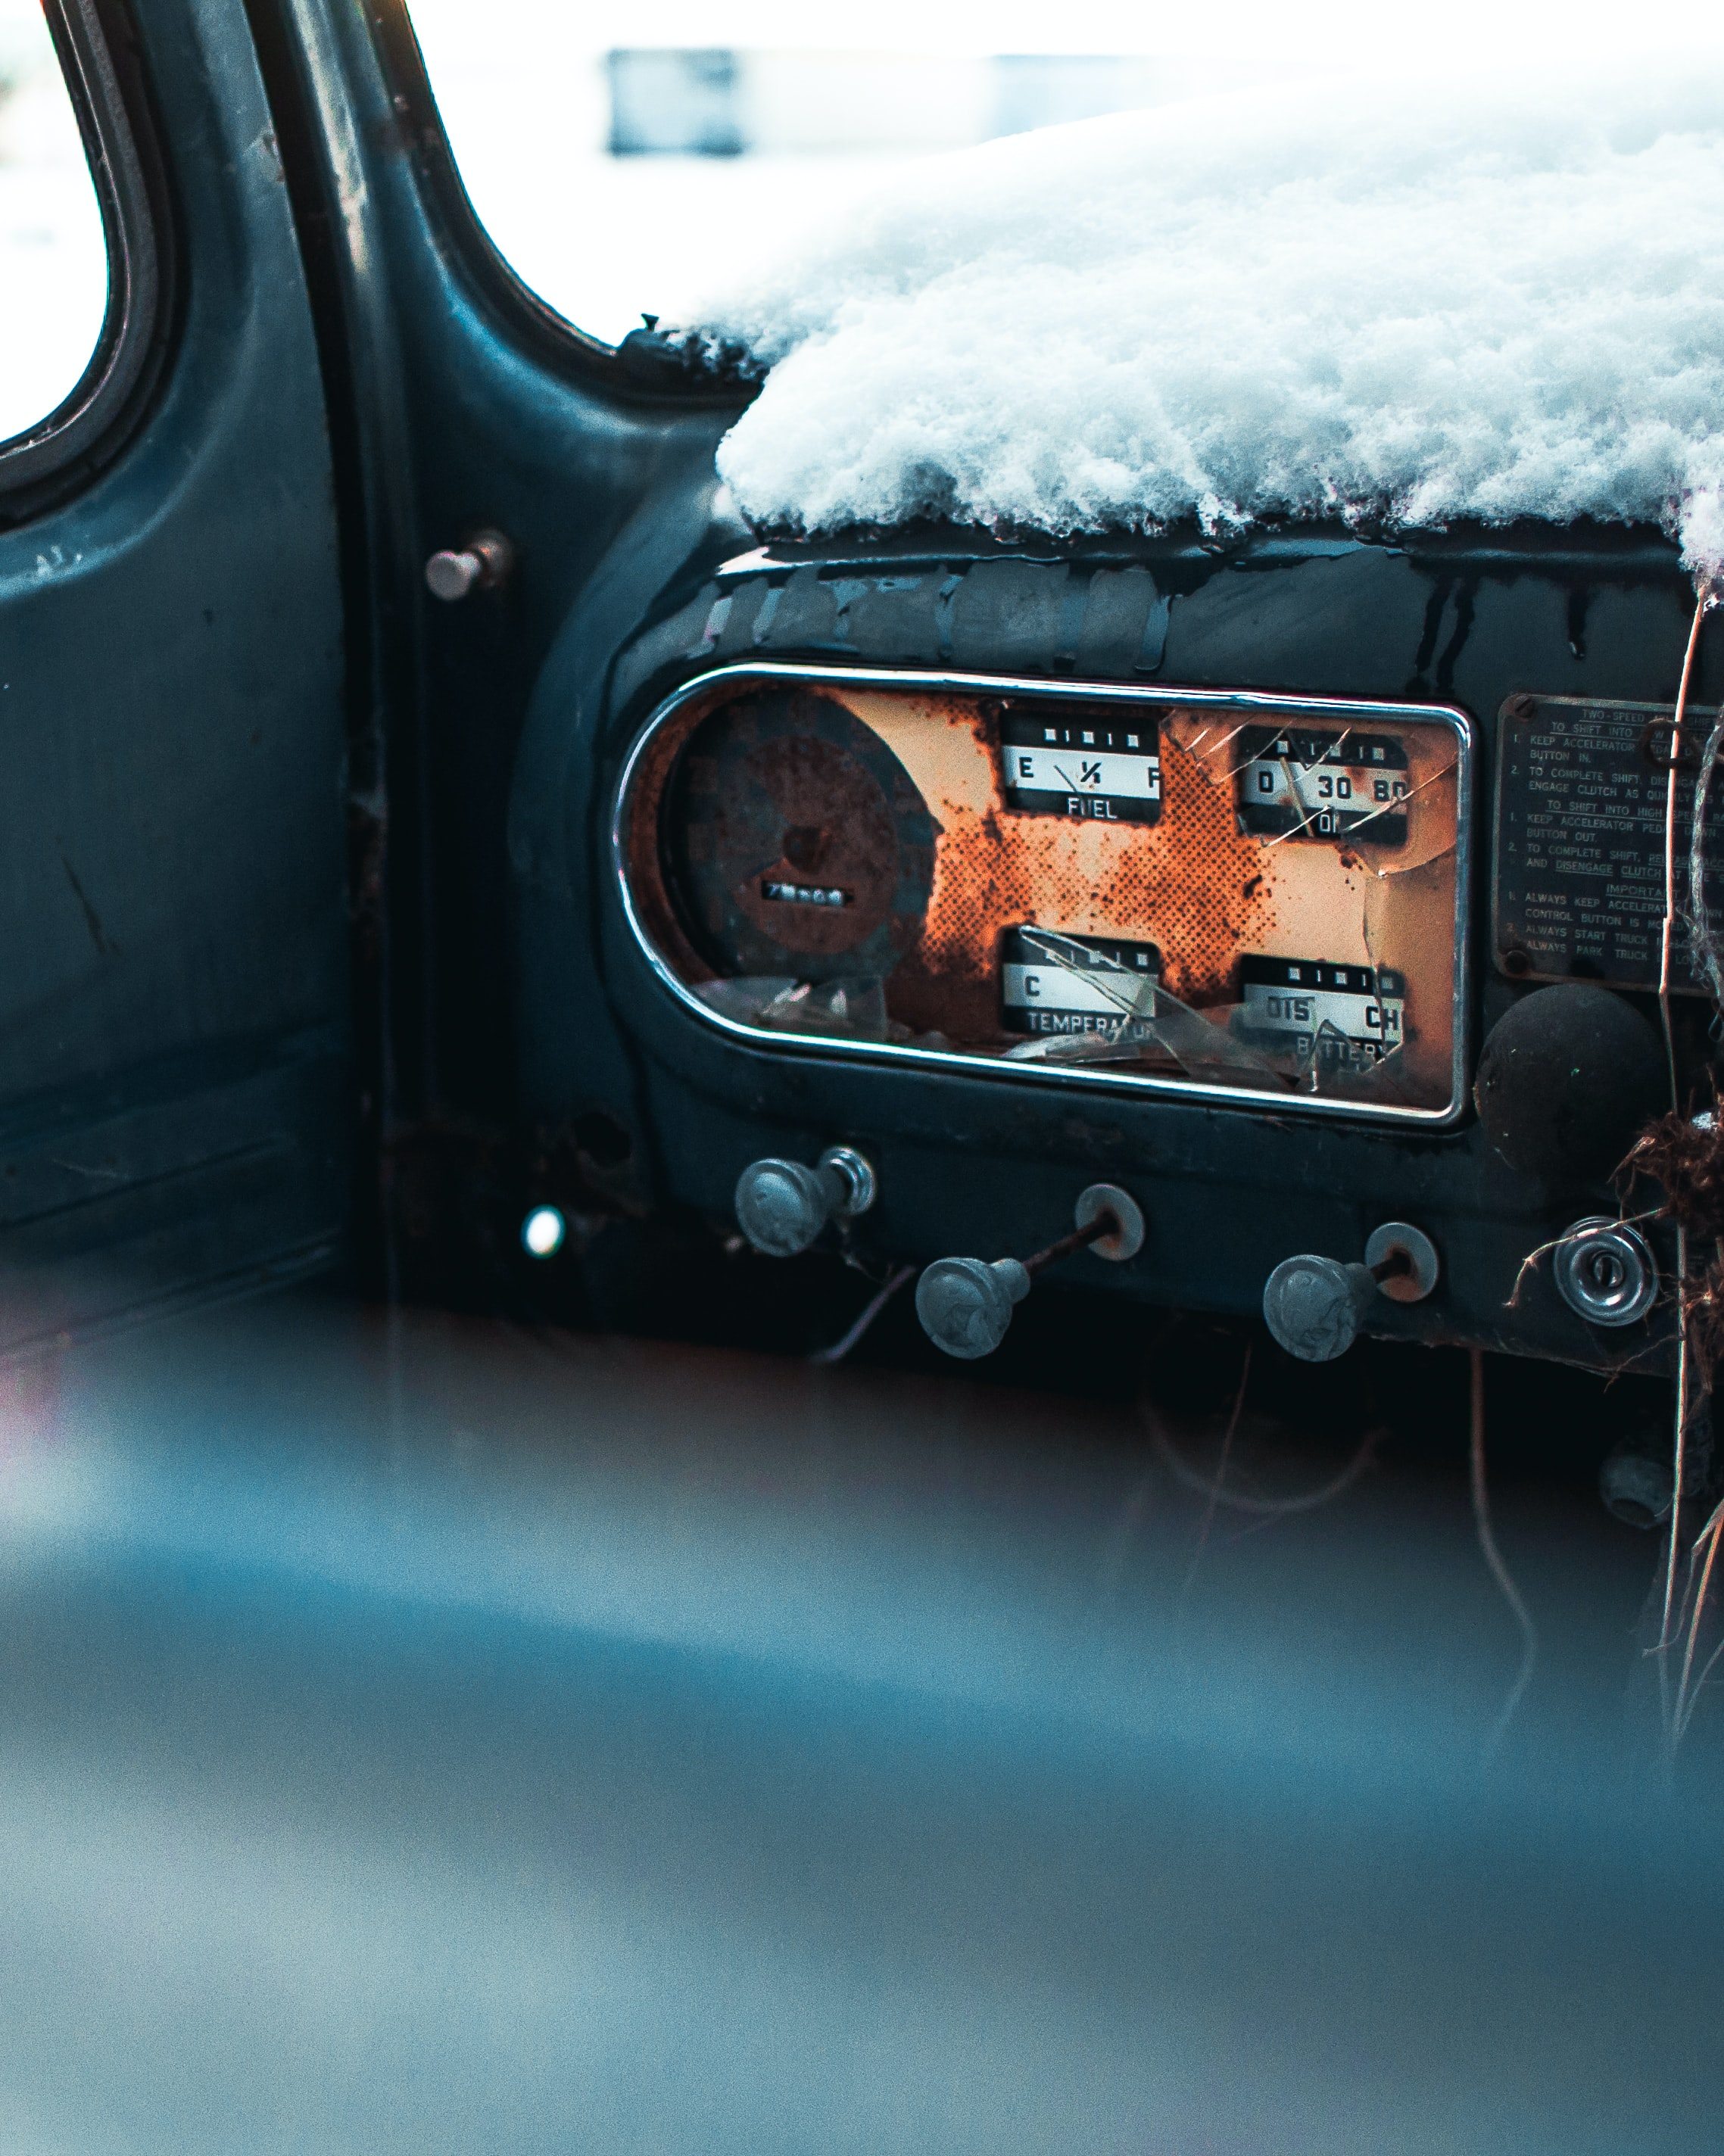 car with snow cover